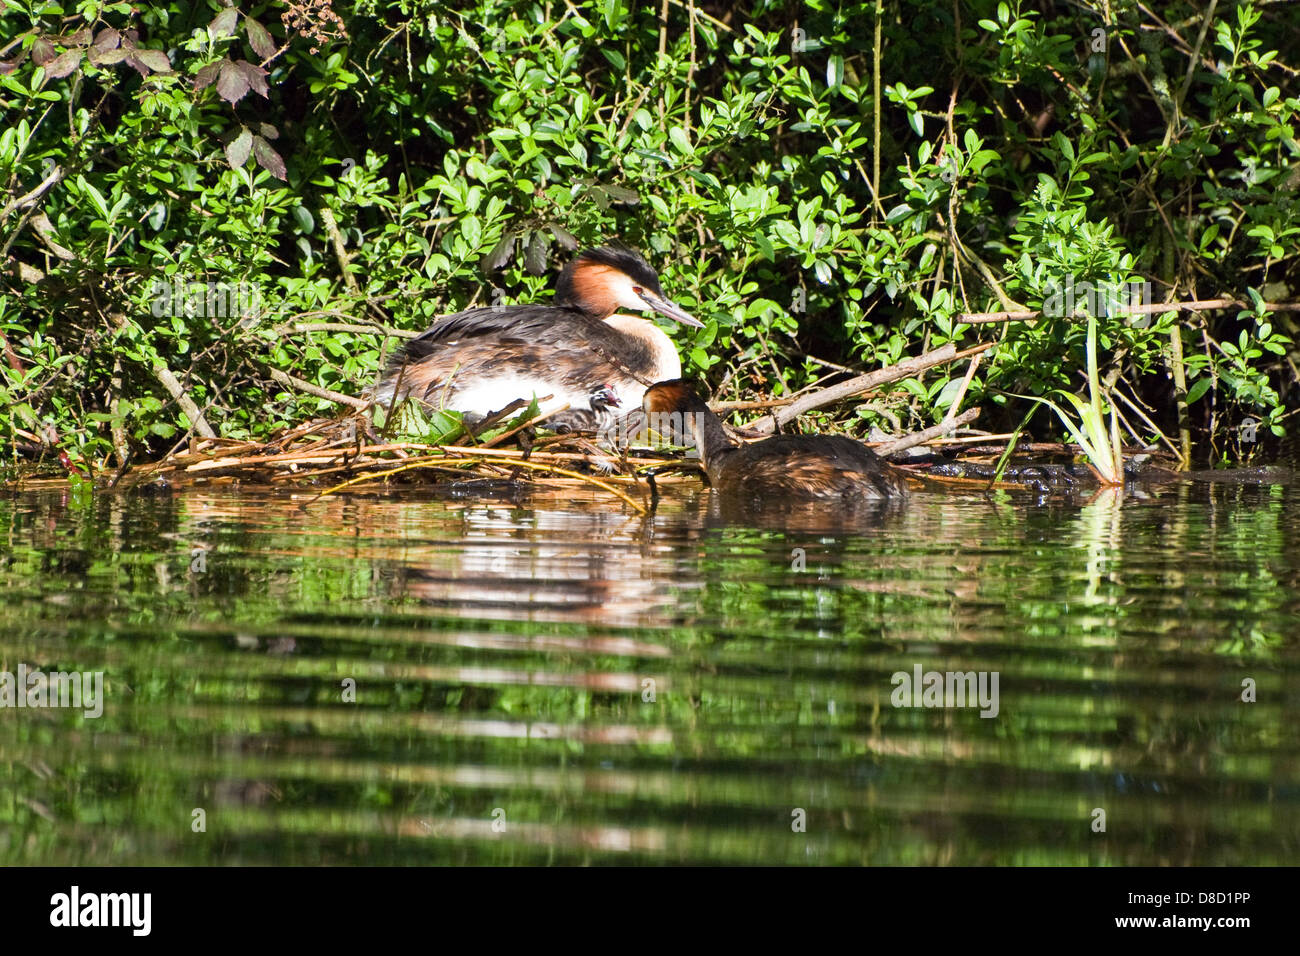 Pair of Great Crested Grebe nesting - Stock Image